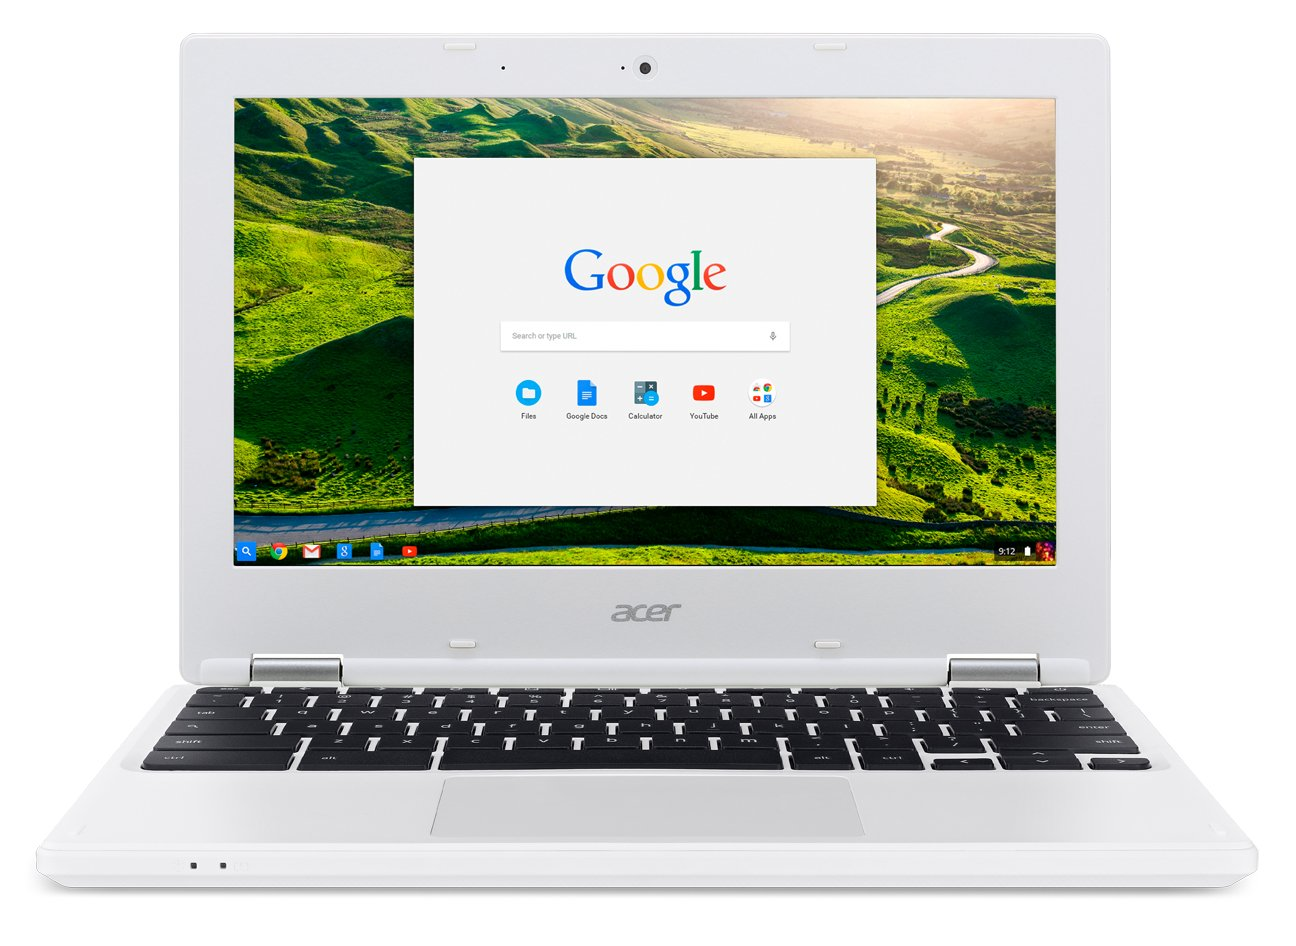 The Acer 11.6'' is one of the best sellers and most popular Chromebooks of all time.